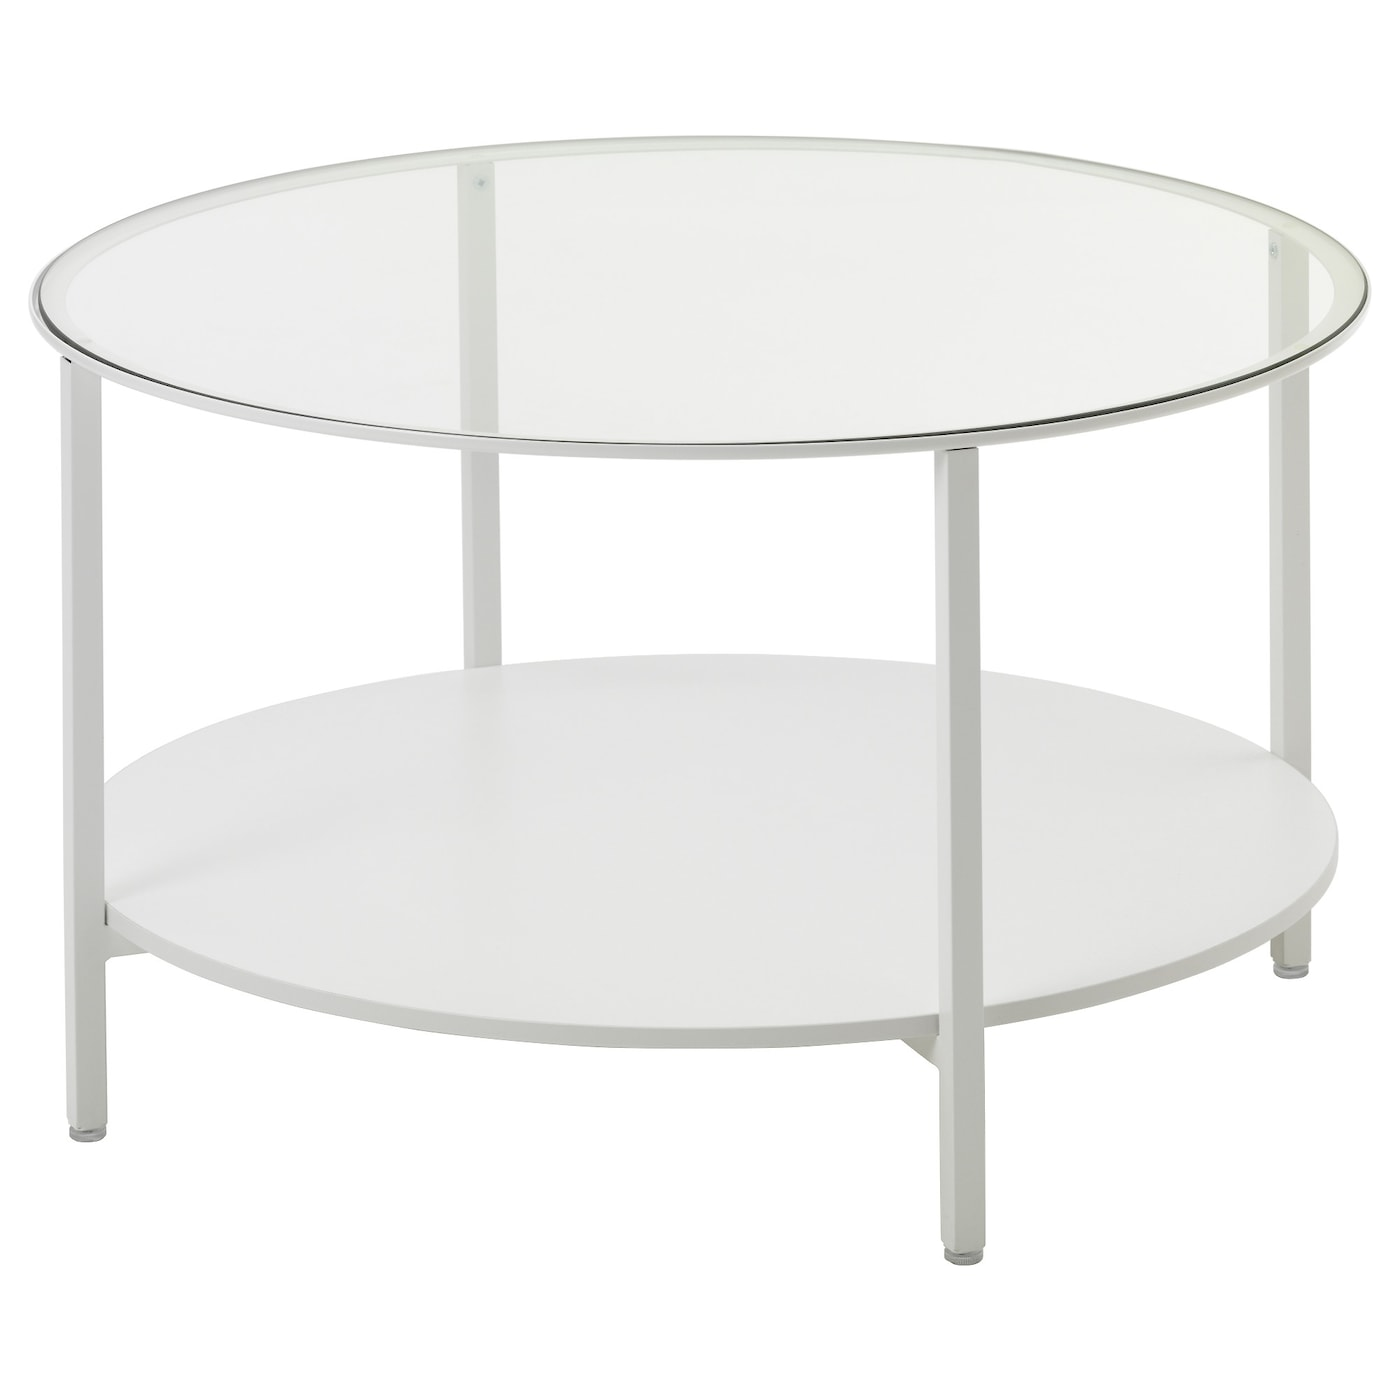 Vittsj coffee table white glass 75 cm ikea for White and glass coffee table